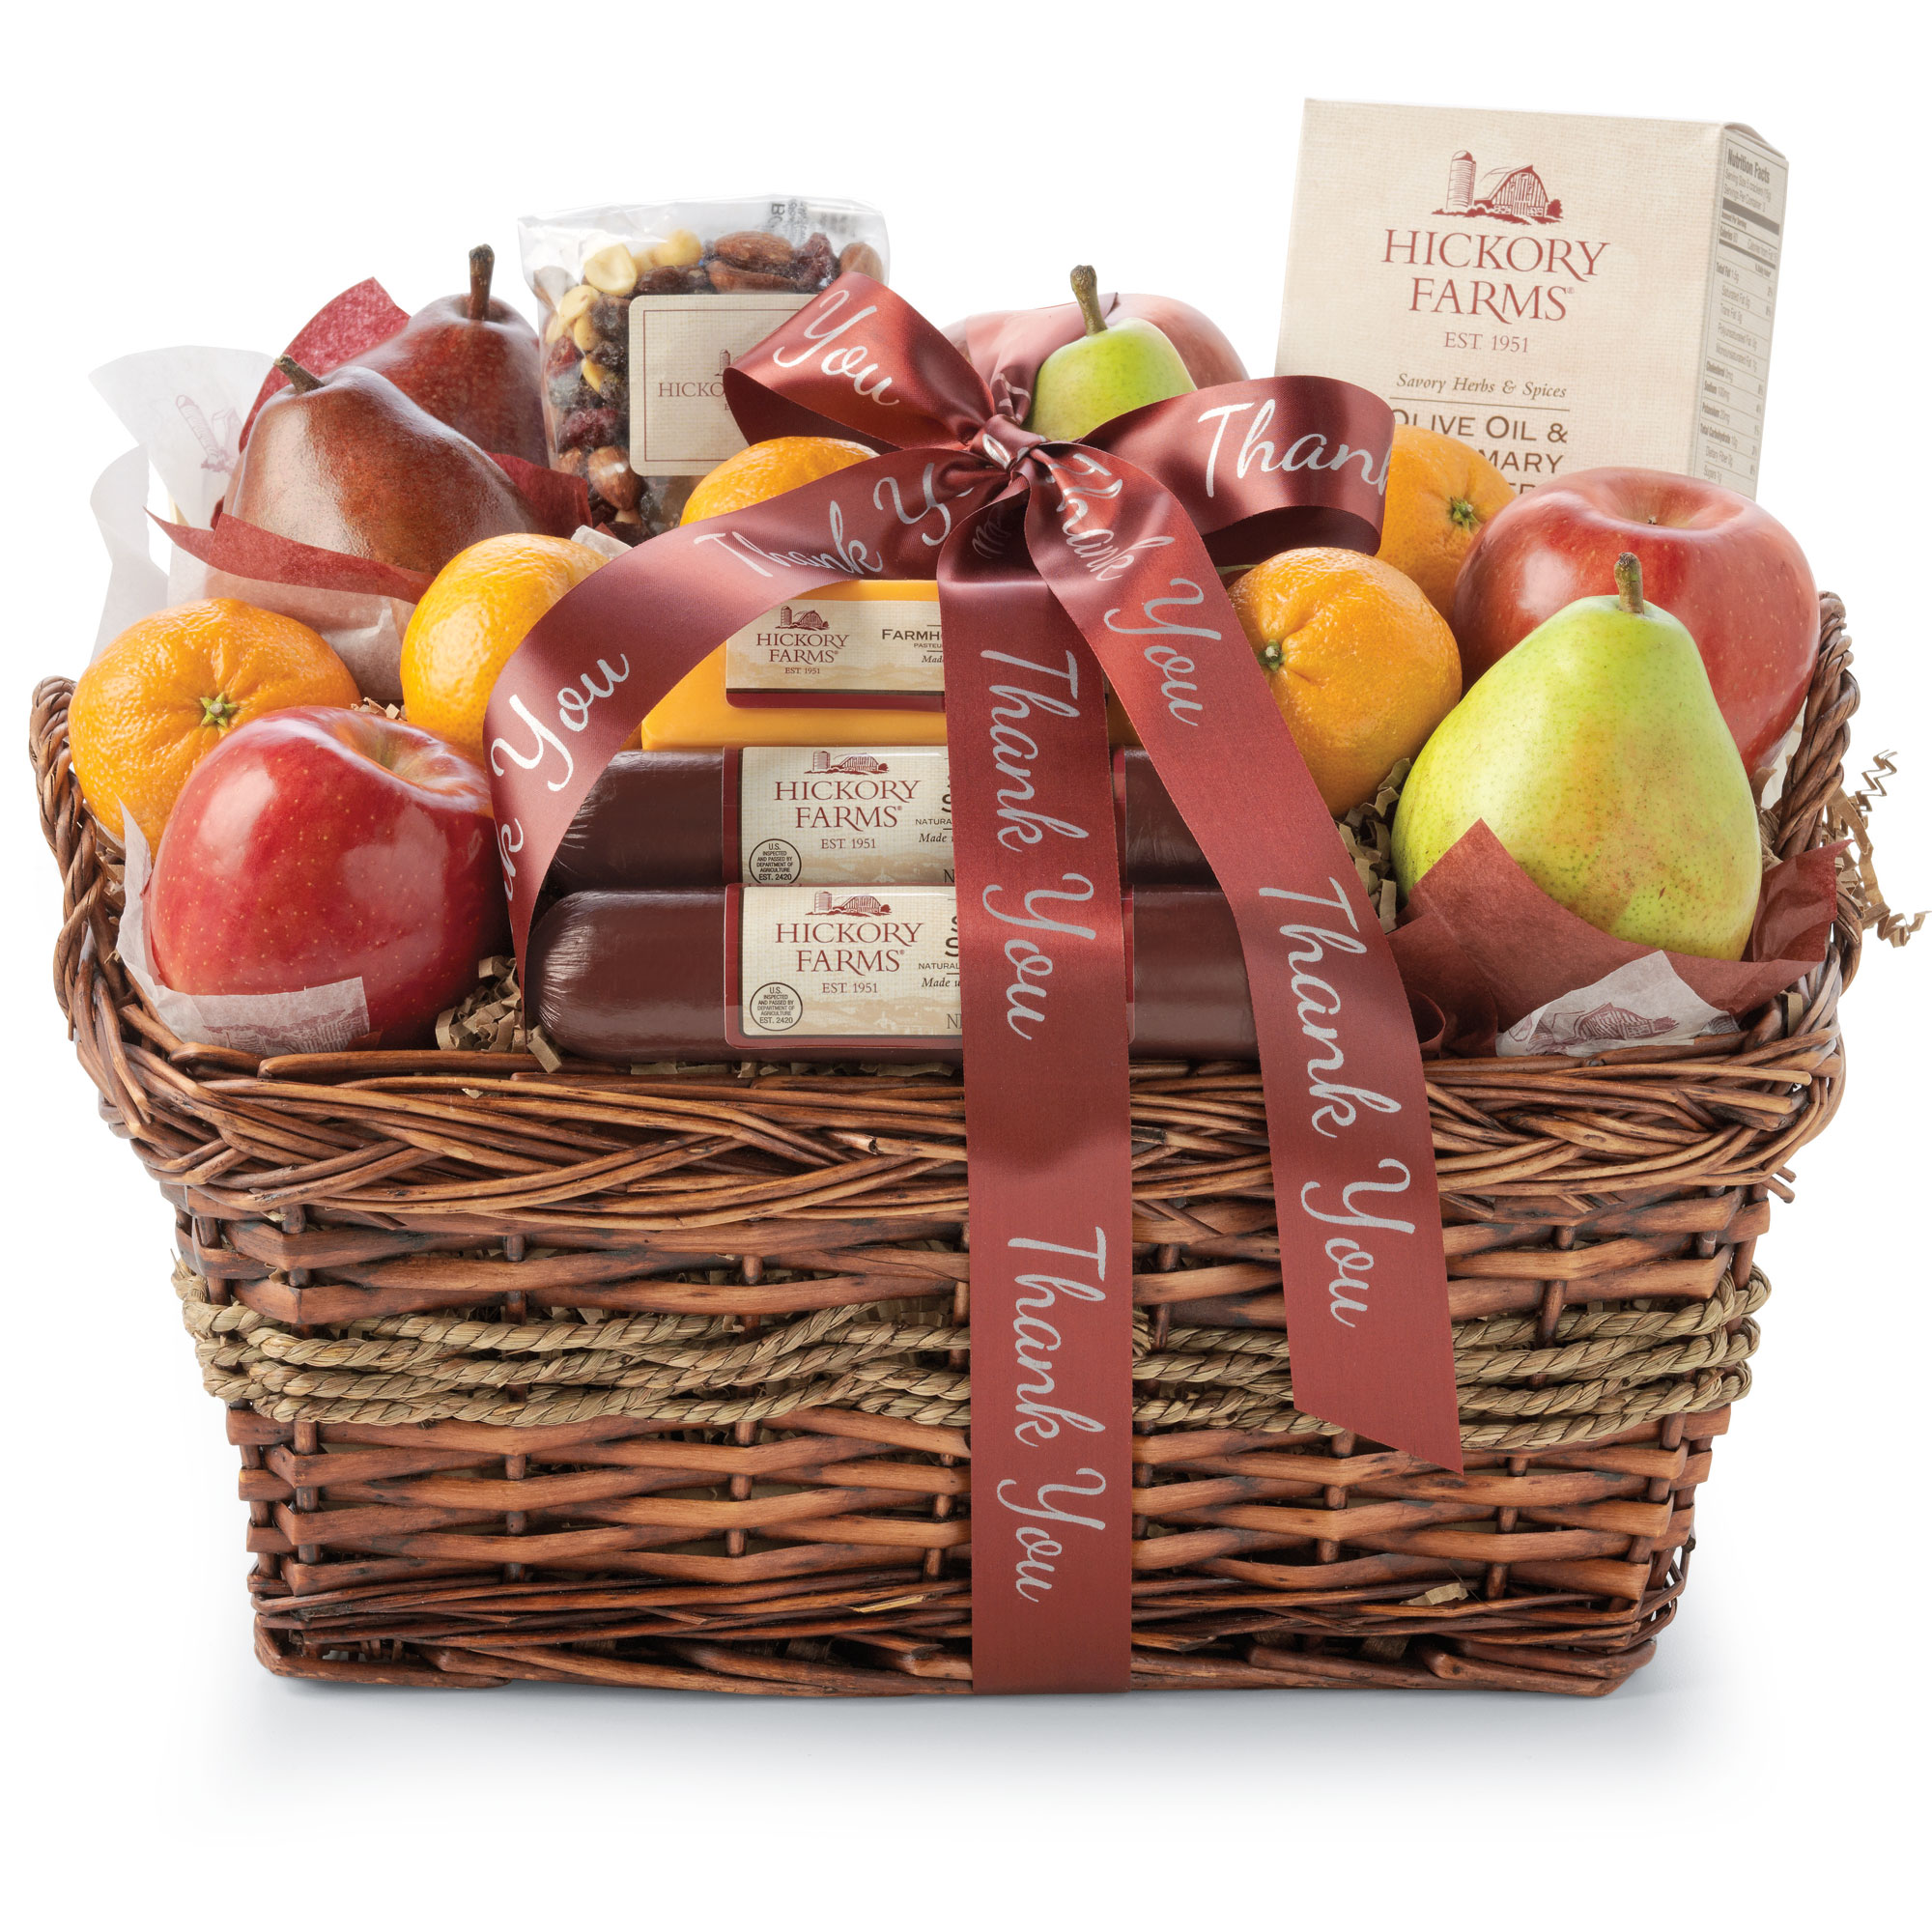 Gift Baskets Hickory Farms: Hickory farms signature birthday gift ...